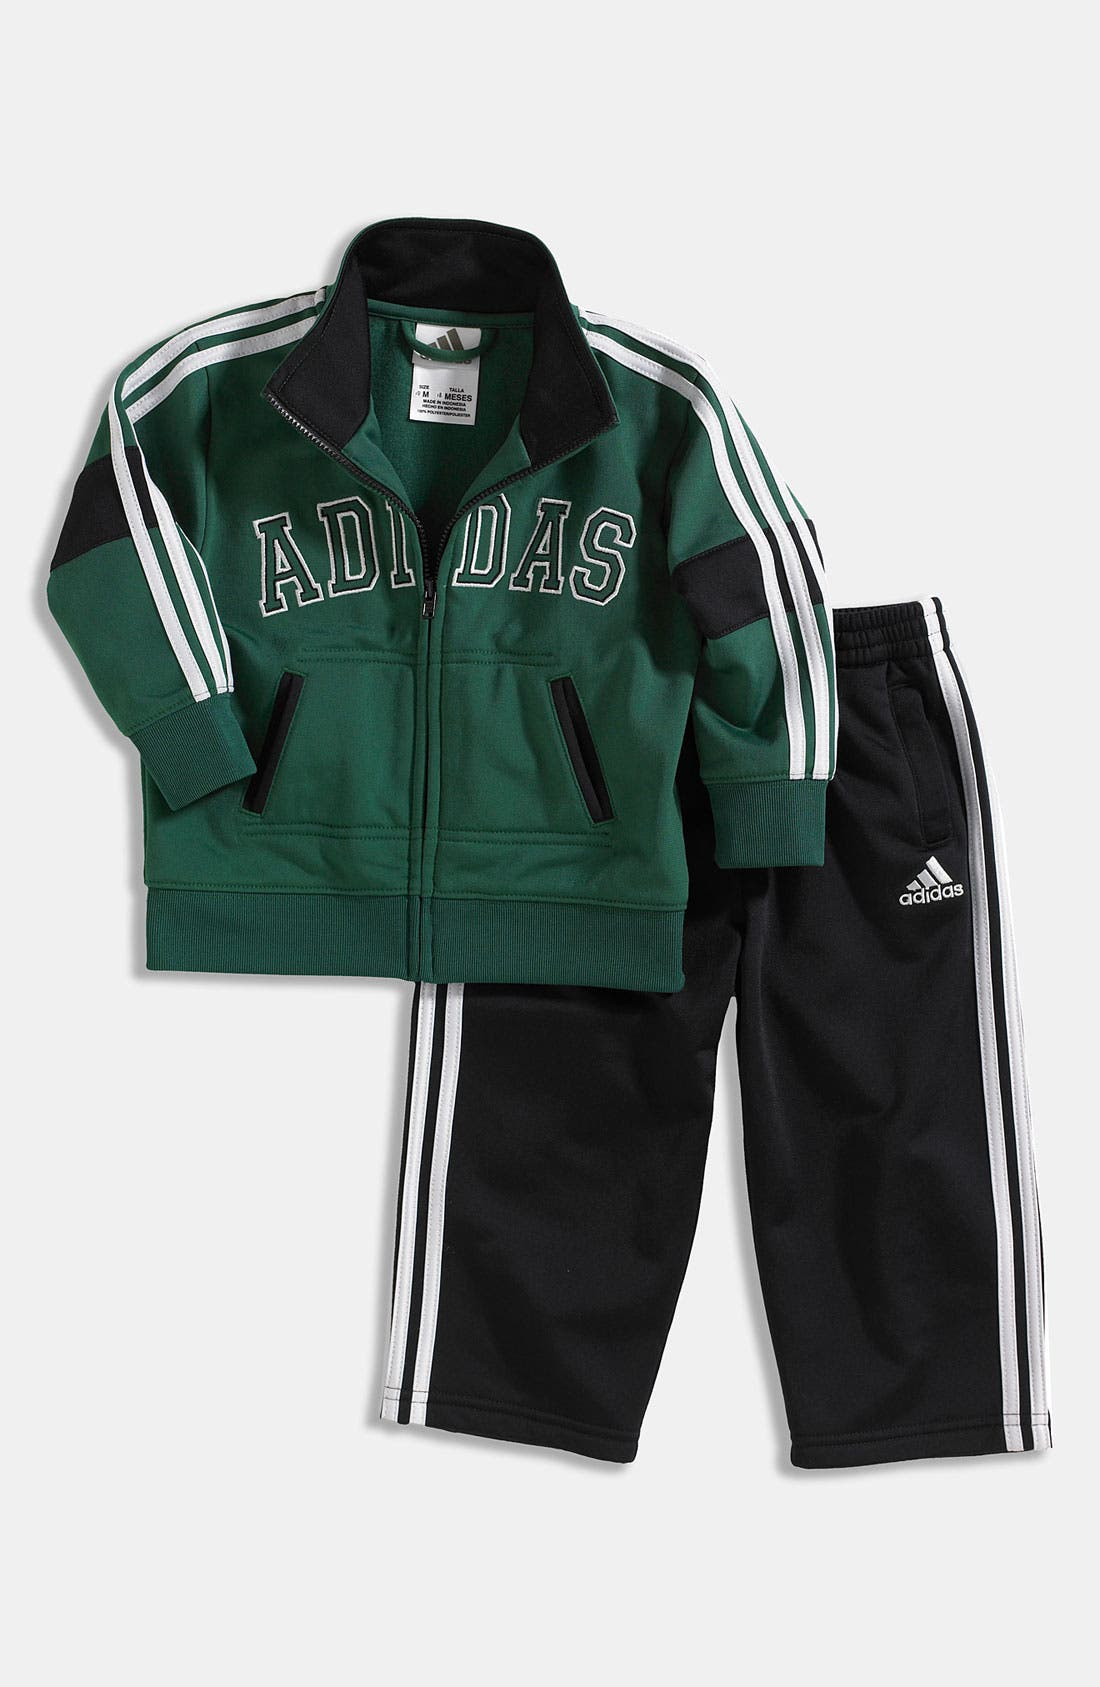 Alternate Image 1 Selected - adidas 'Fashion' Tricot Jacket & Pants (Toddler)